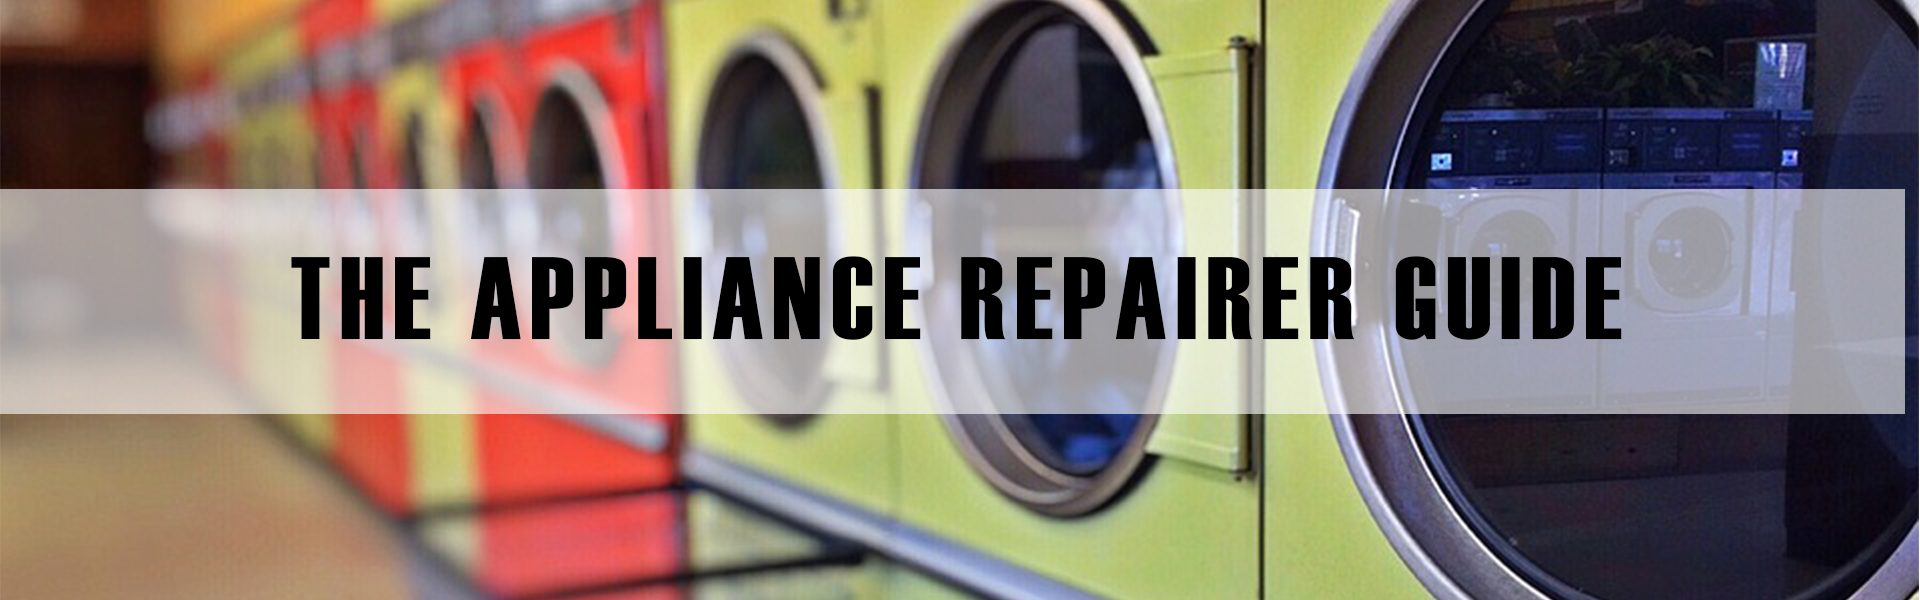 The Appliance Repairer Guide